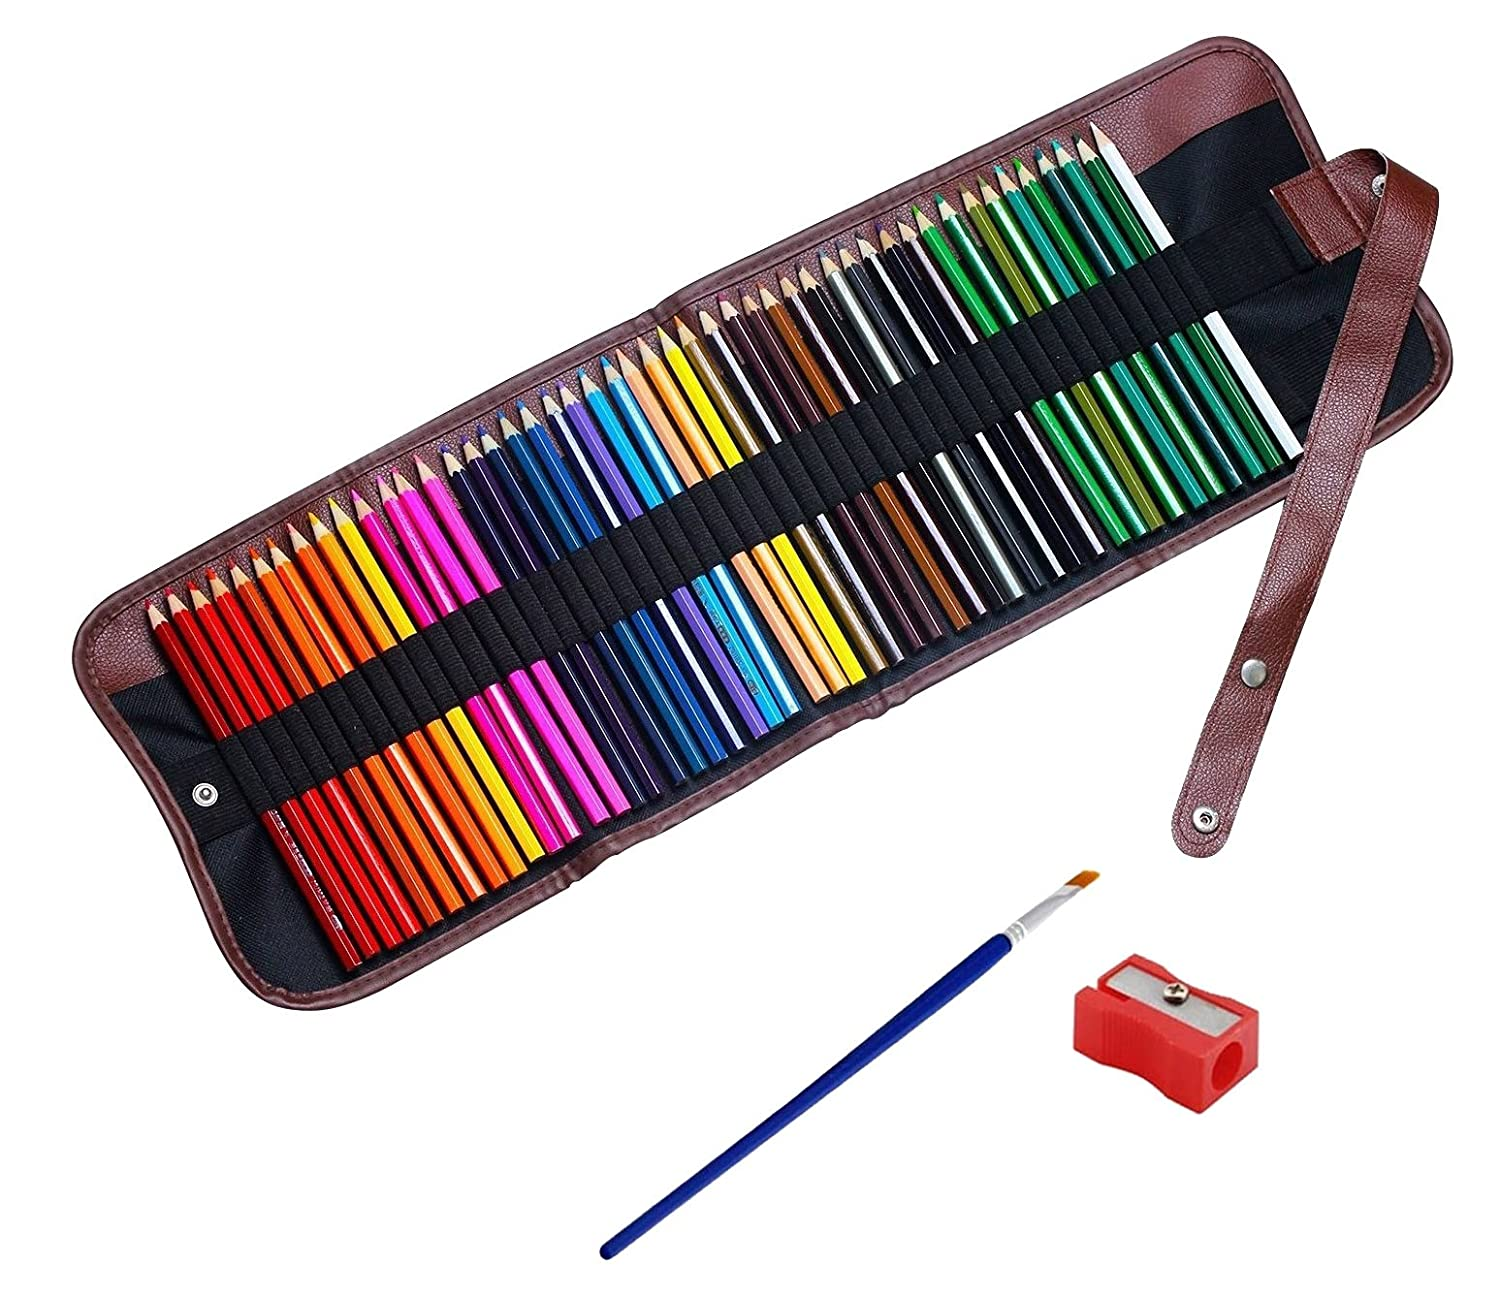 WONGYEAH Colored Watercolor Water Soluble Colored Pencils For Art Students and Professionals, Assorted Colors For Sketch Coloring Pages For Kids and Adults Includes Canvas Roll Pencil Case - 48 Colors